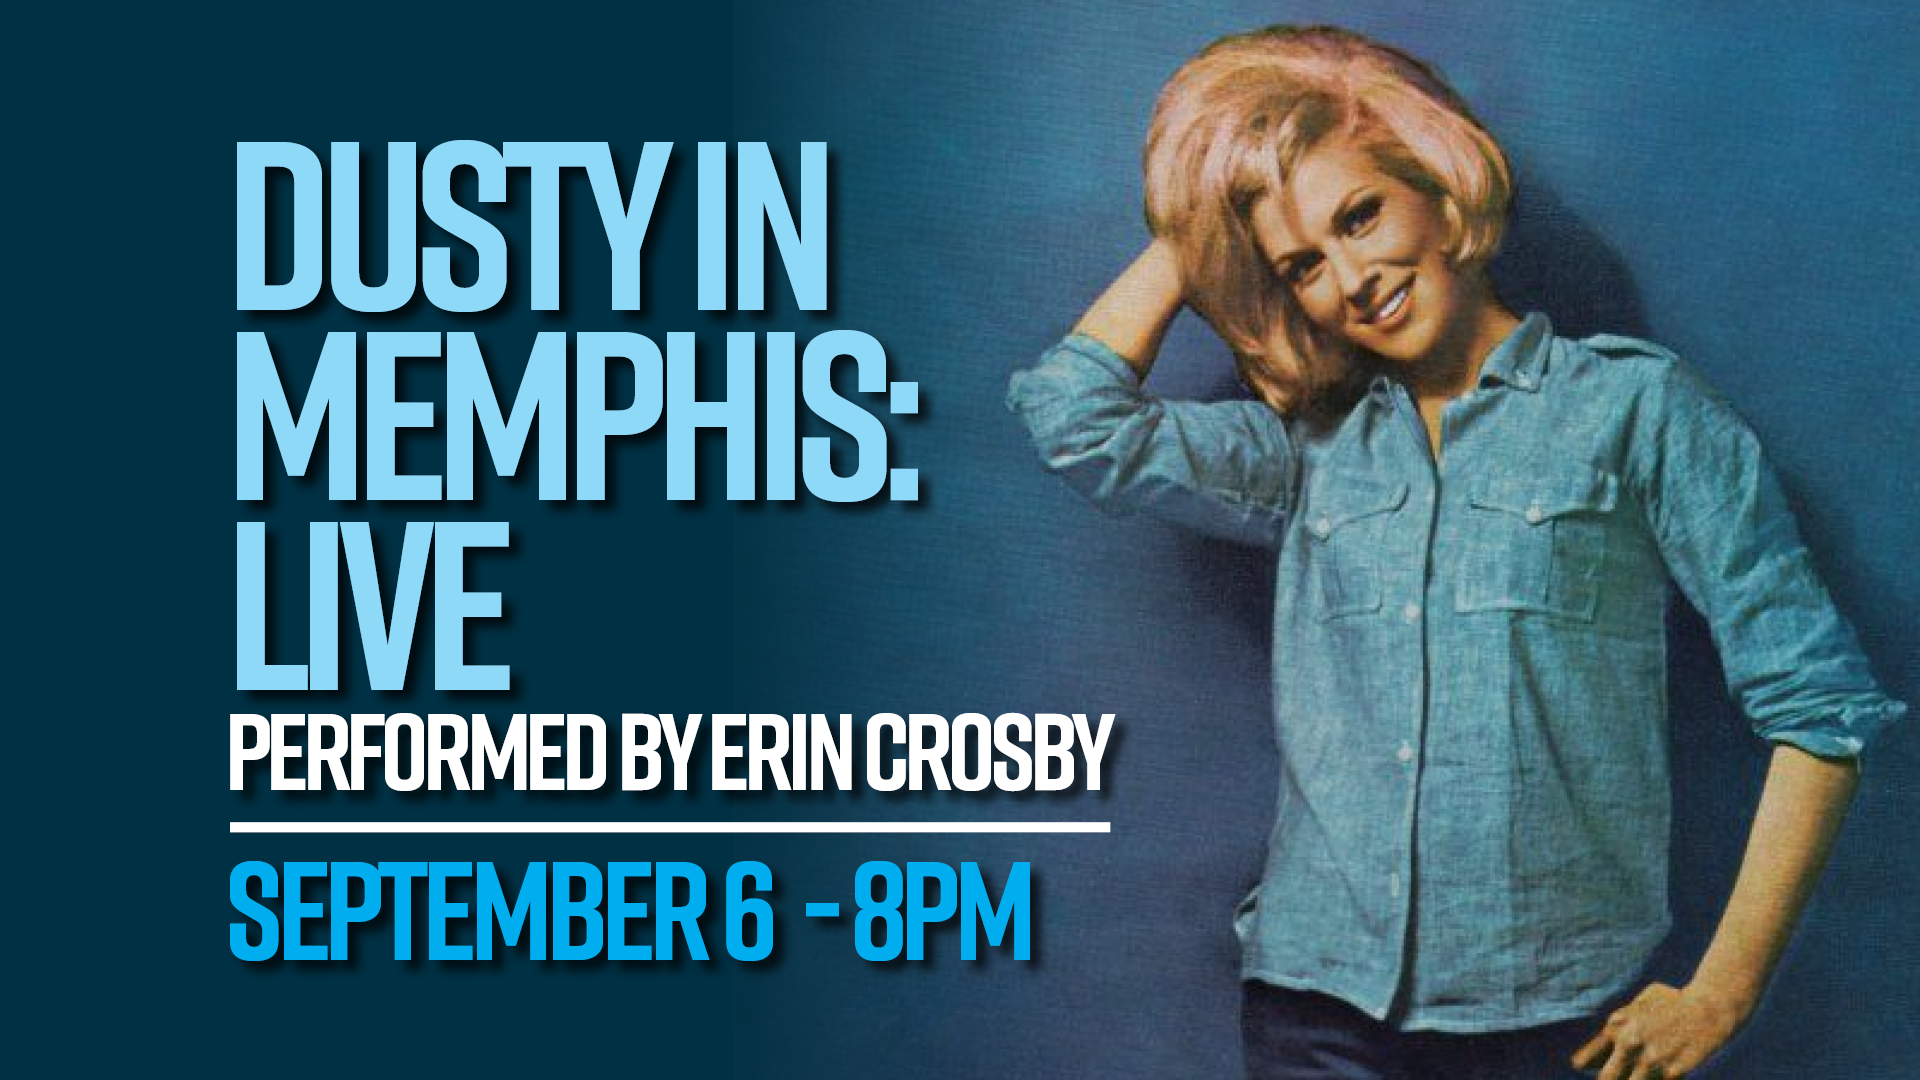 Dusty In Memphis: Erin Crosby